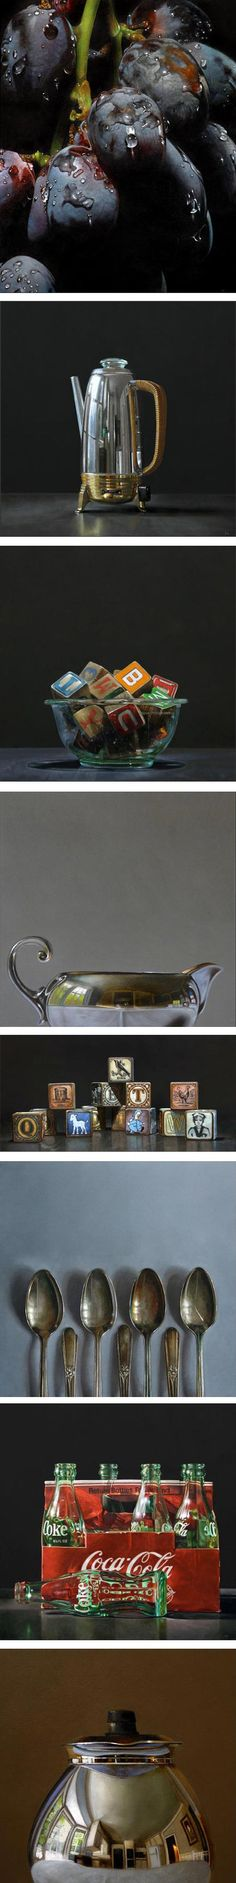 Hyperrealistic paintings by Neil Hollingsworth